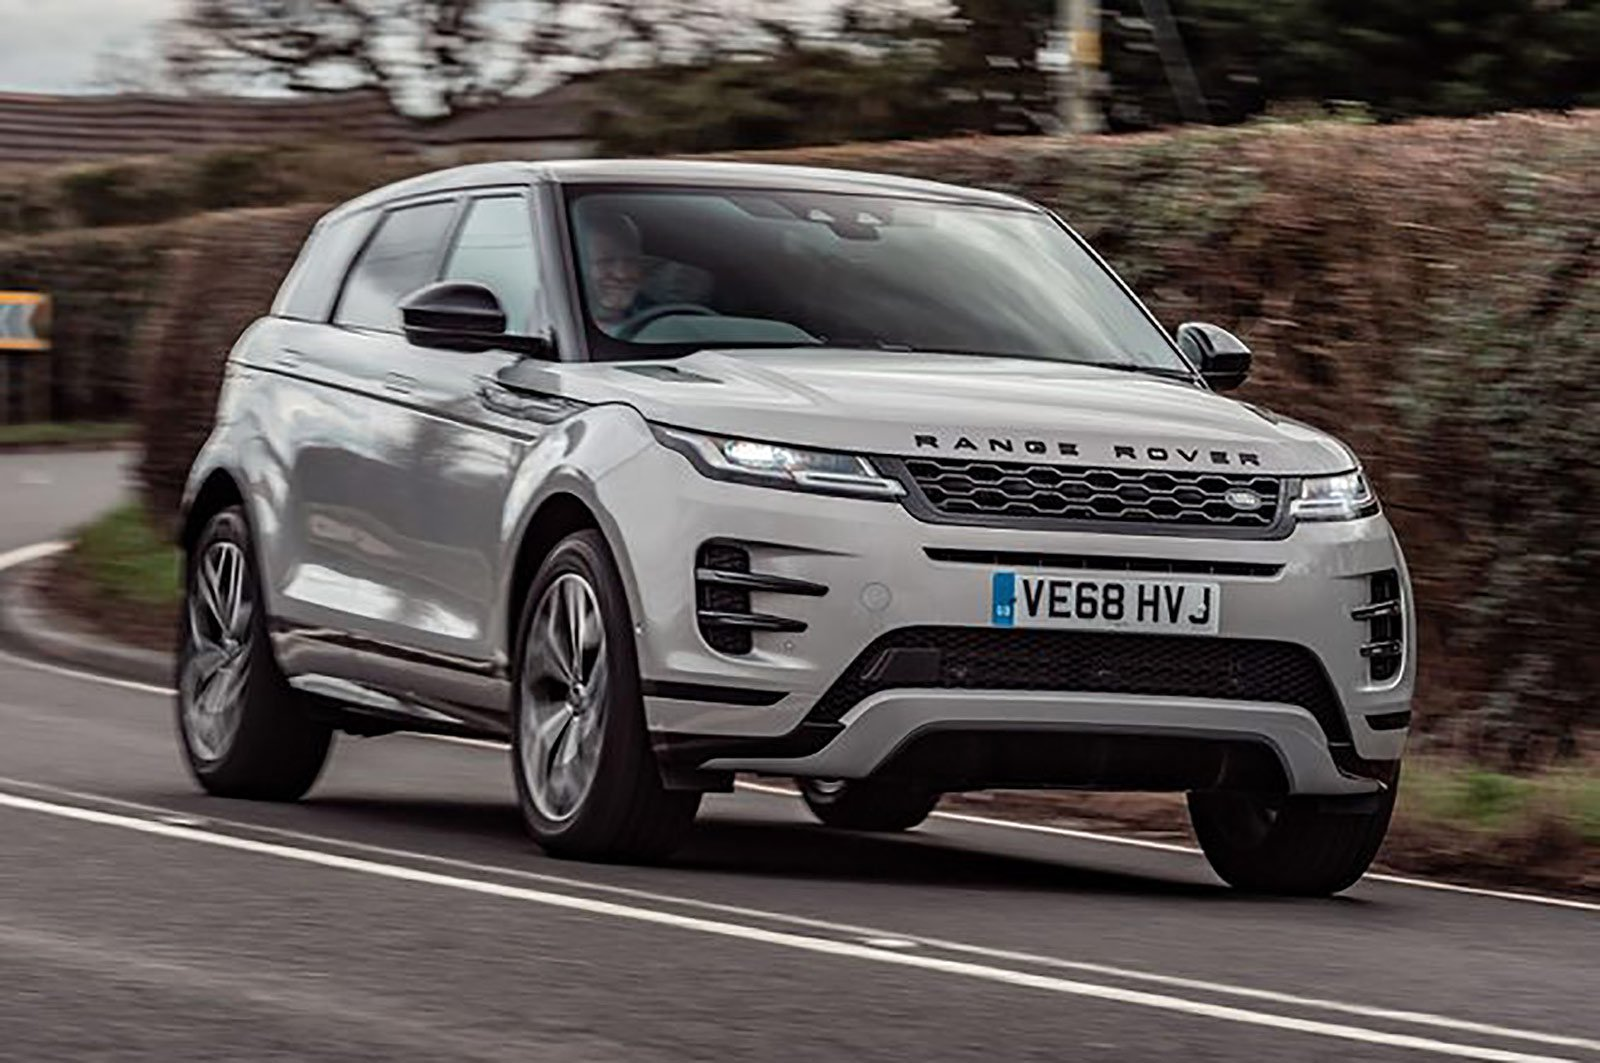 Range Rover Evoque front three quarters